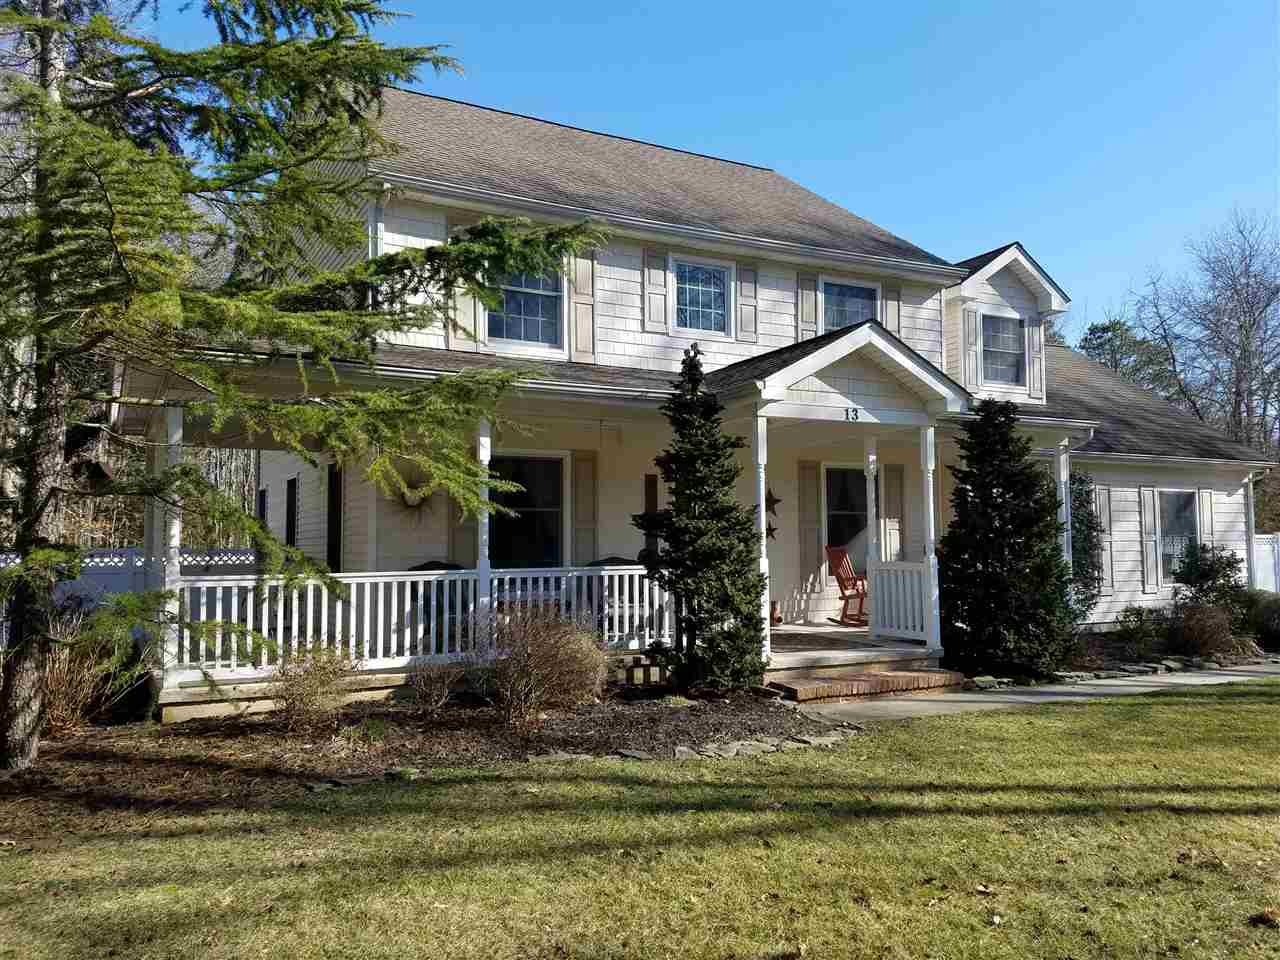 13 W Woodland Avenue - Cape May Court House